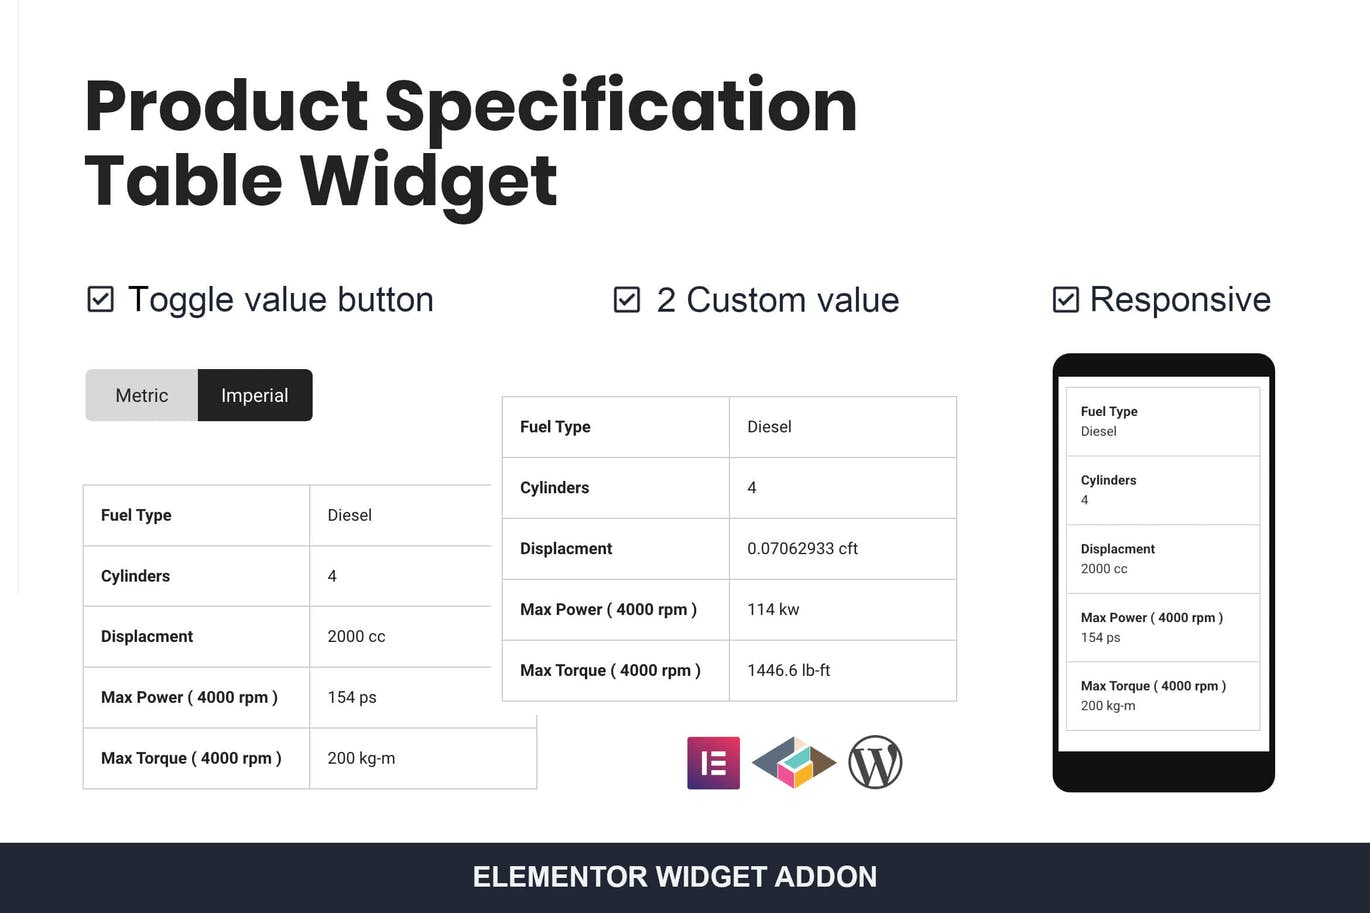 Product-Specification-Table-Widget-For-Elementor